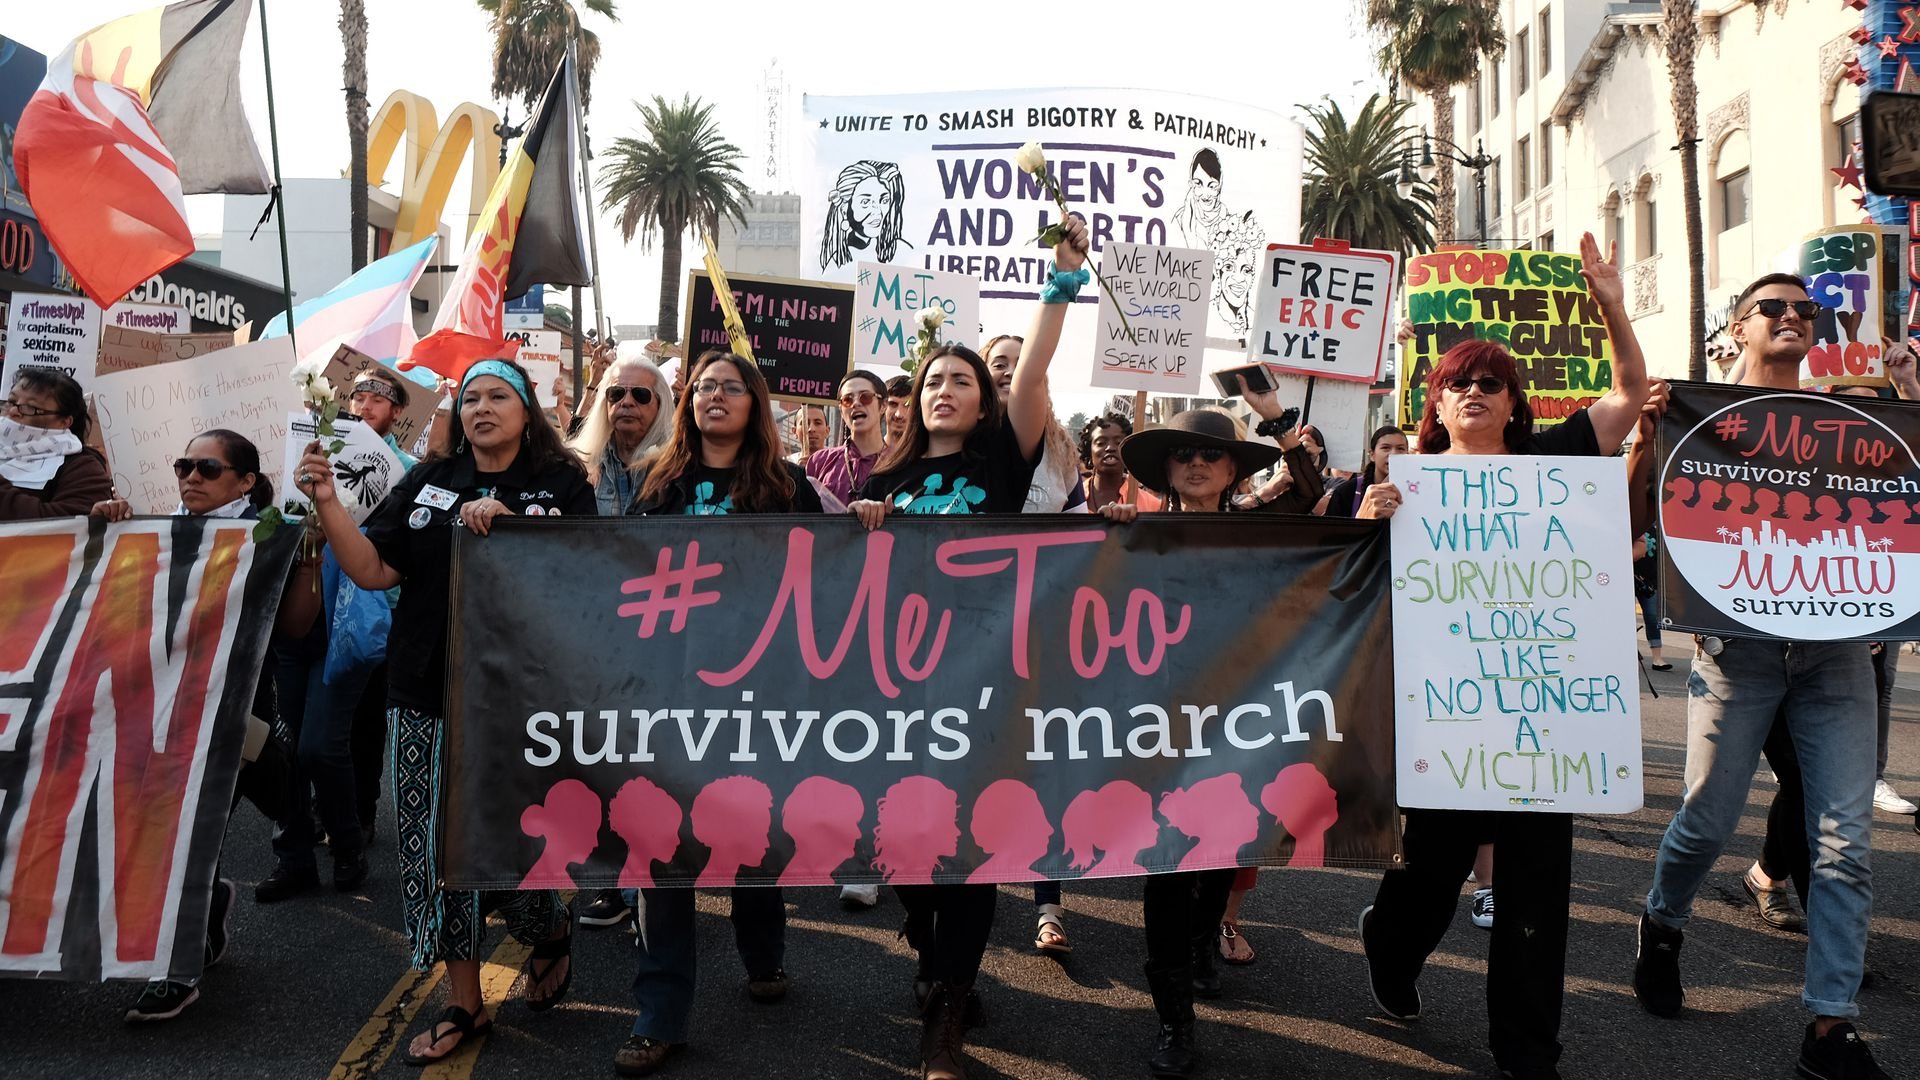 Activists participate in the 2018 #MeToo March on November 10, 2018 in Hollywood, California. (Photo by Sarah Morris/Getty Images)